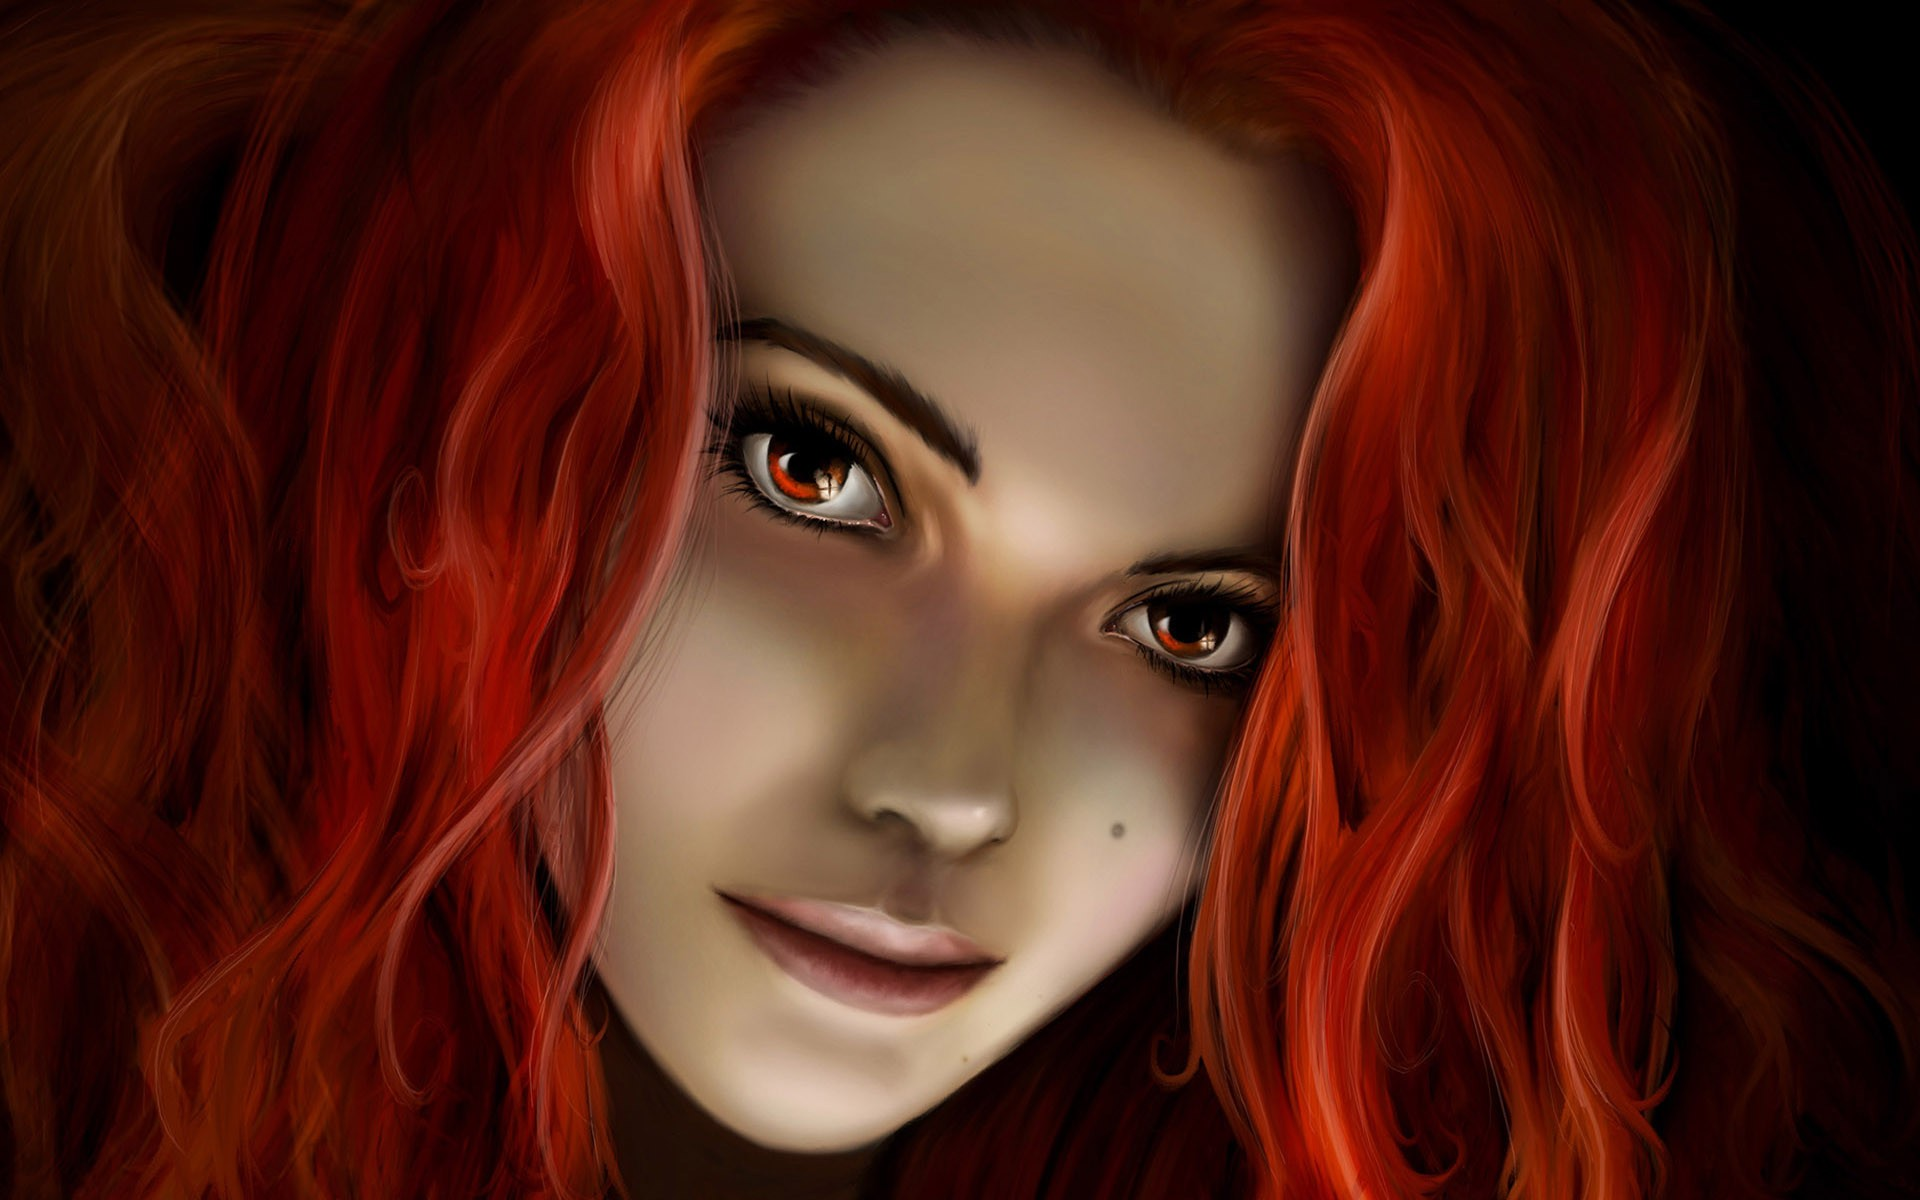 General 1920x1200 fantasy girl redhead women face artwork